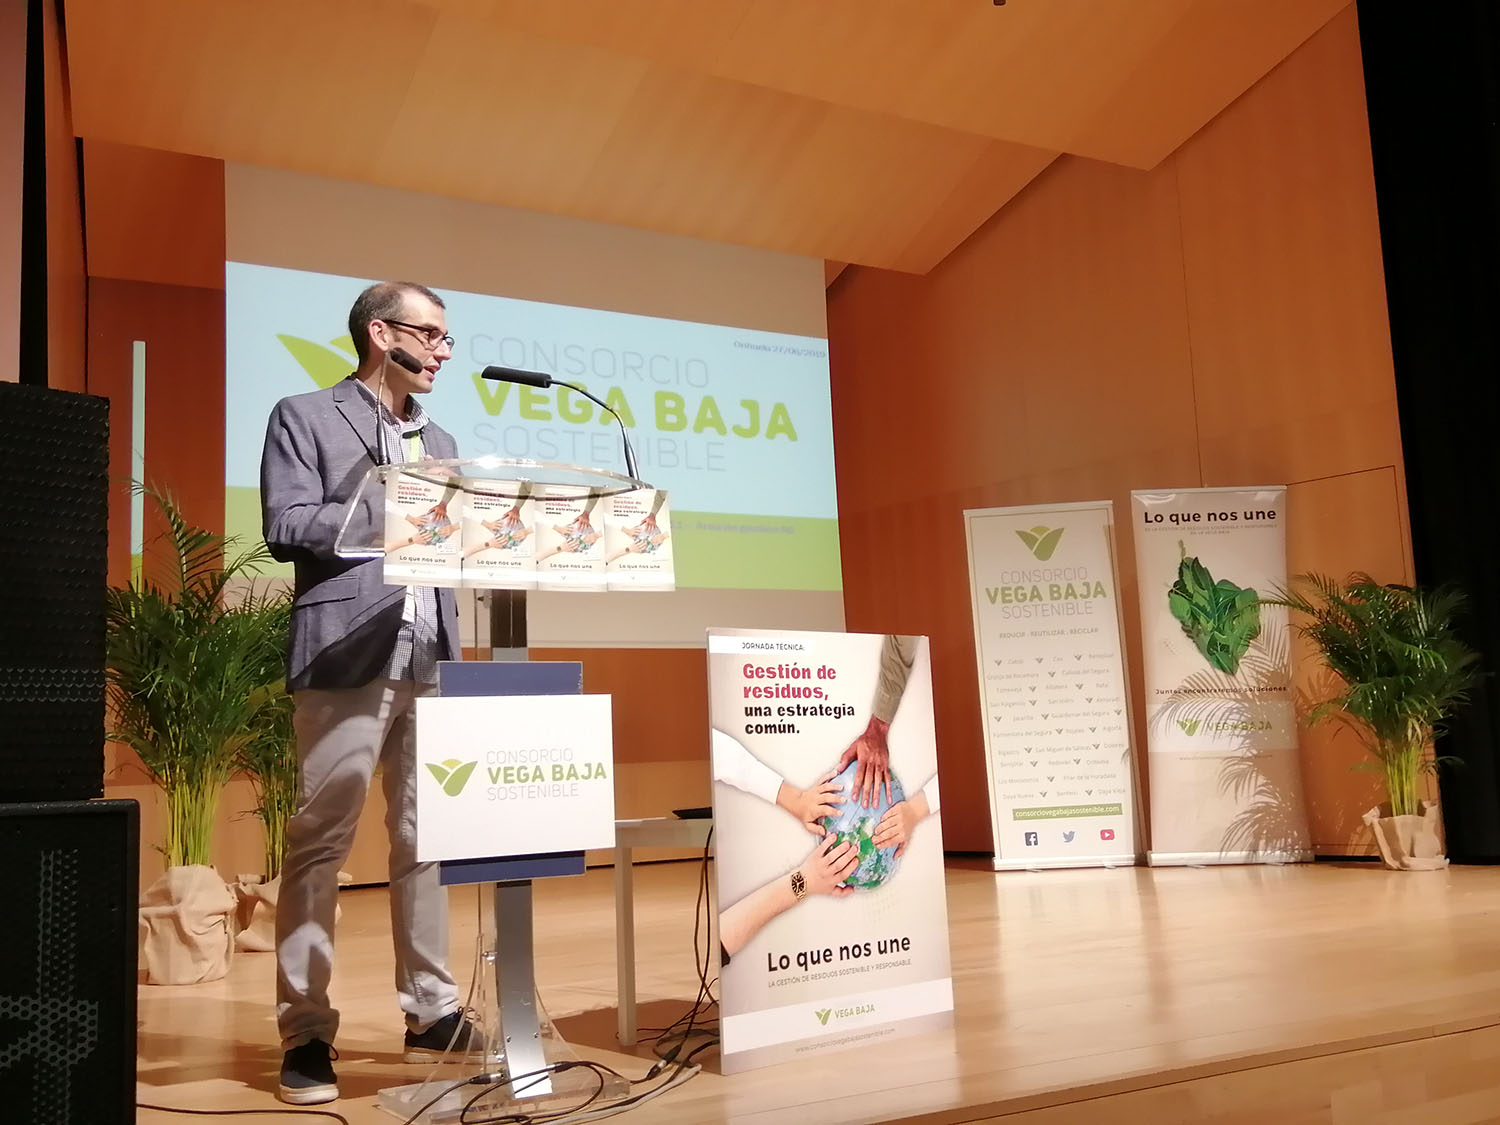 Consorcio-Vega-Baja-Sostenible-Ecosilvo-Comunicación-y-Marketing-Ambiental